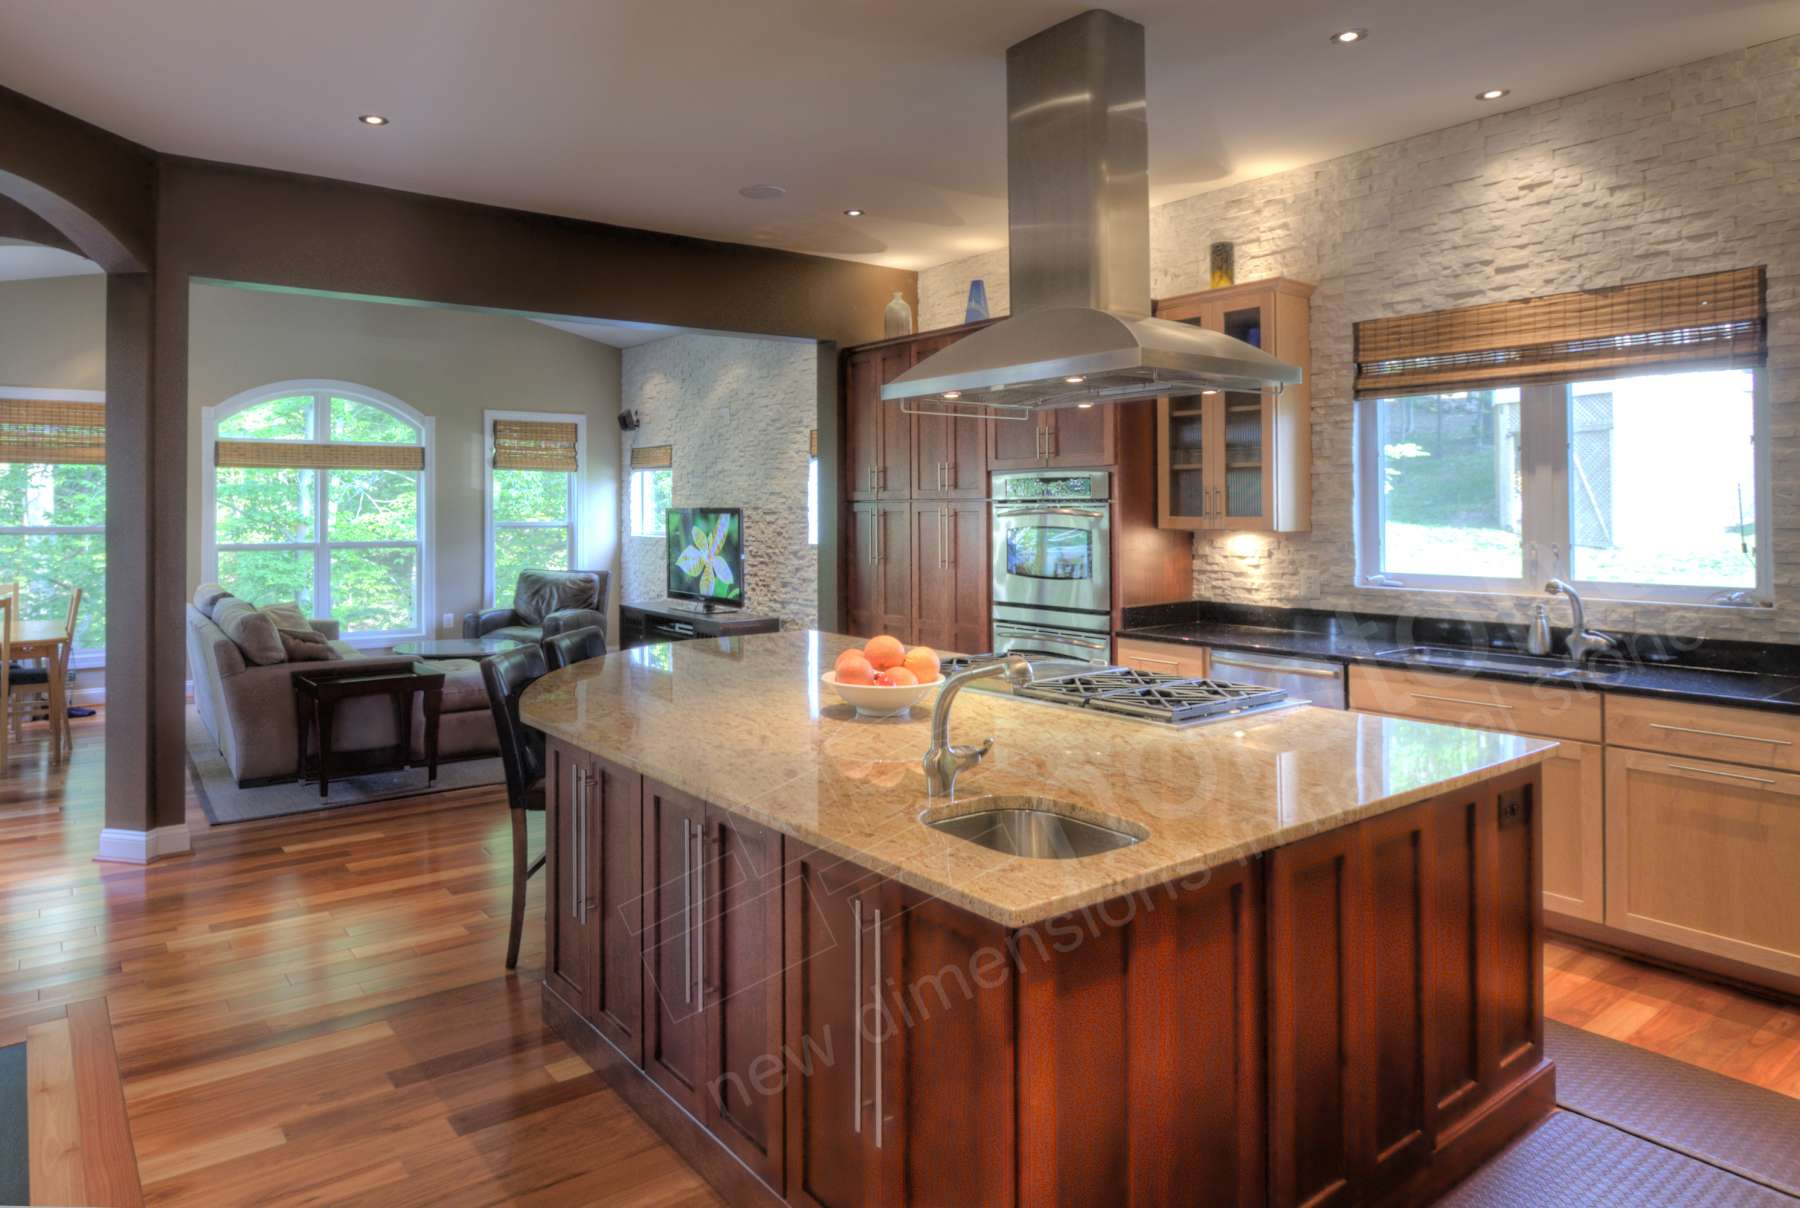 Norstone Blog: Natural Stone Design Ideas and Projects